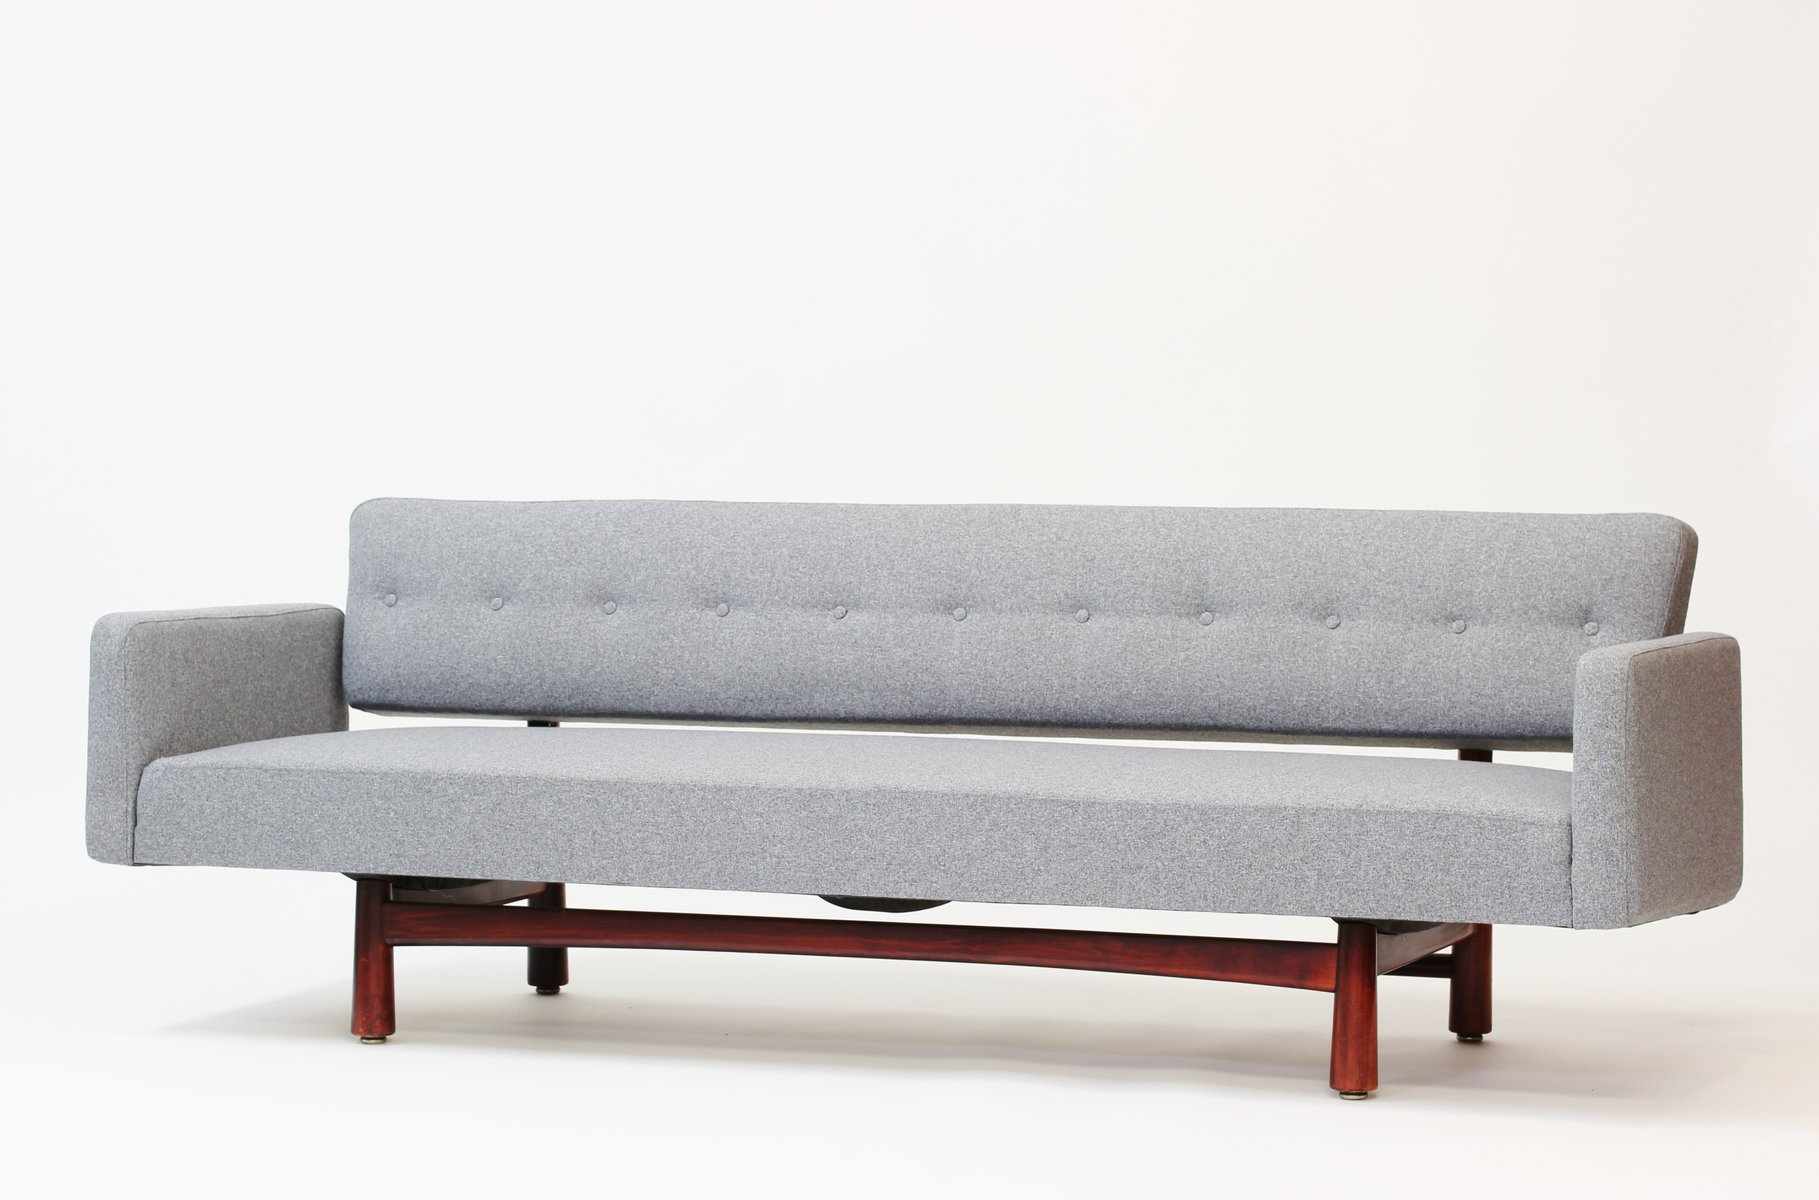 new york sofa by edward wormley for ljungs industrier dux. Black Bedroom Furniture Sets. Home Design Ideas